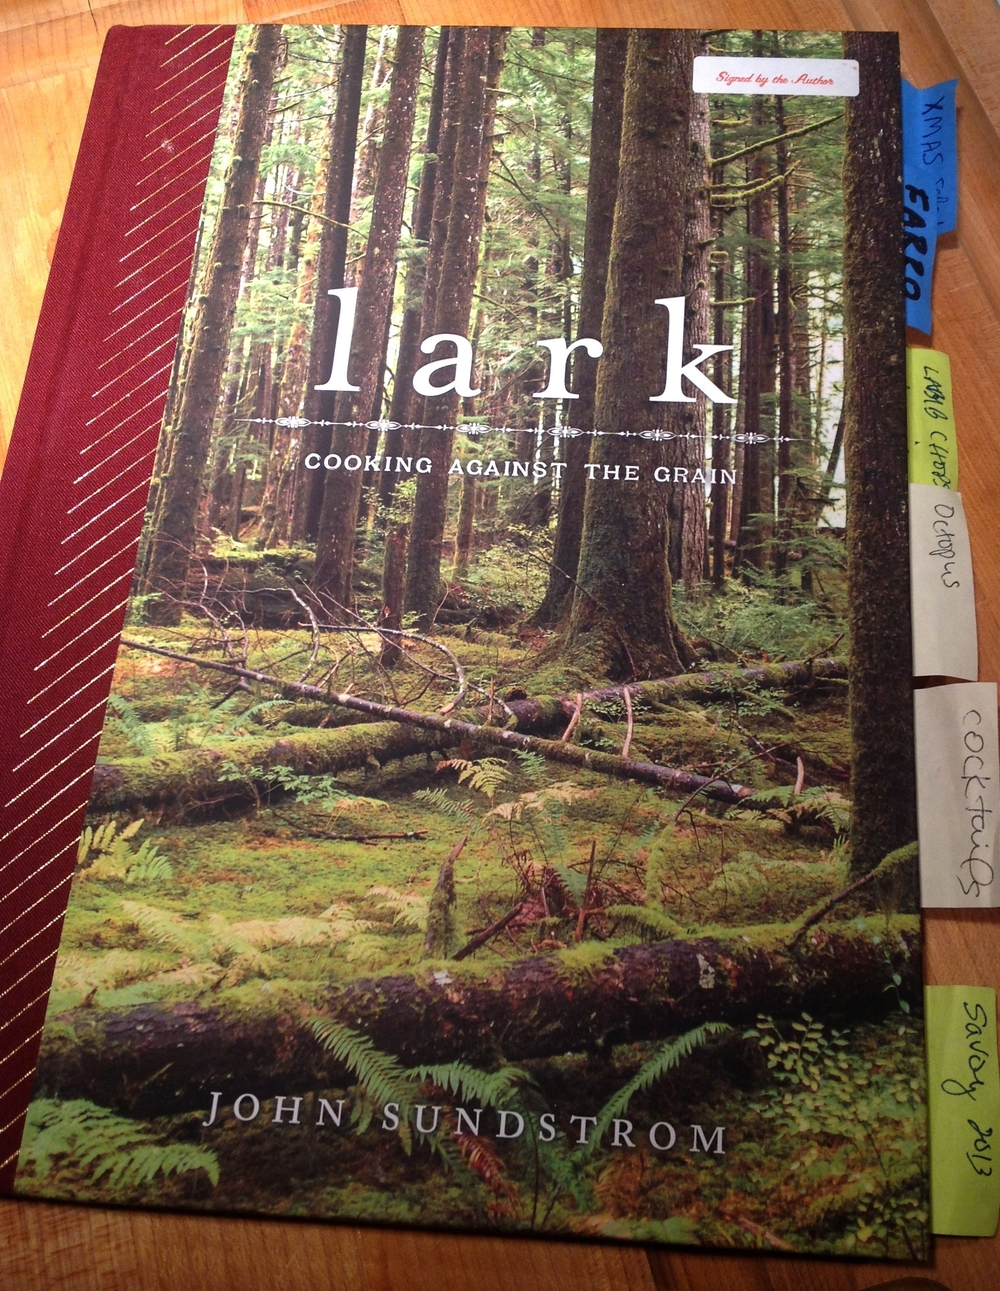 lark COOKING AGAINST THE GRAIN by John Sundstrom